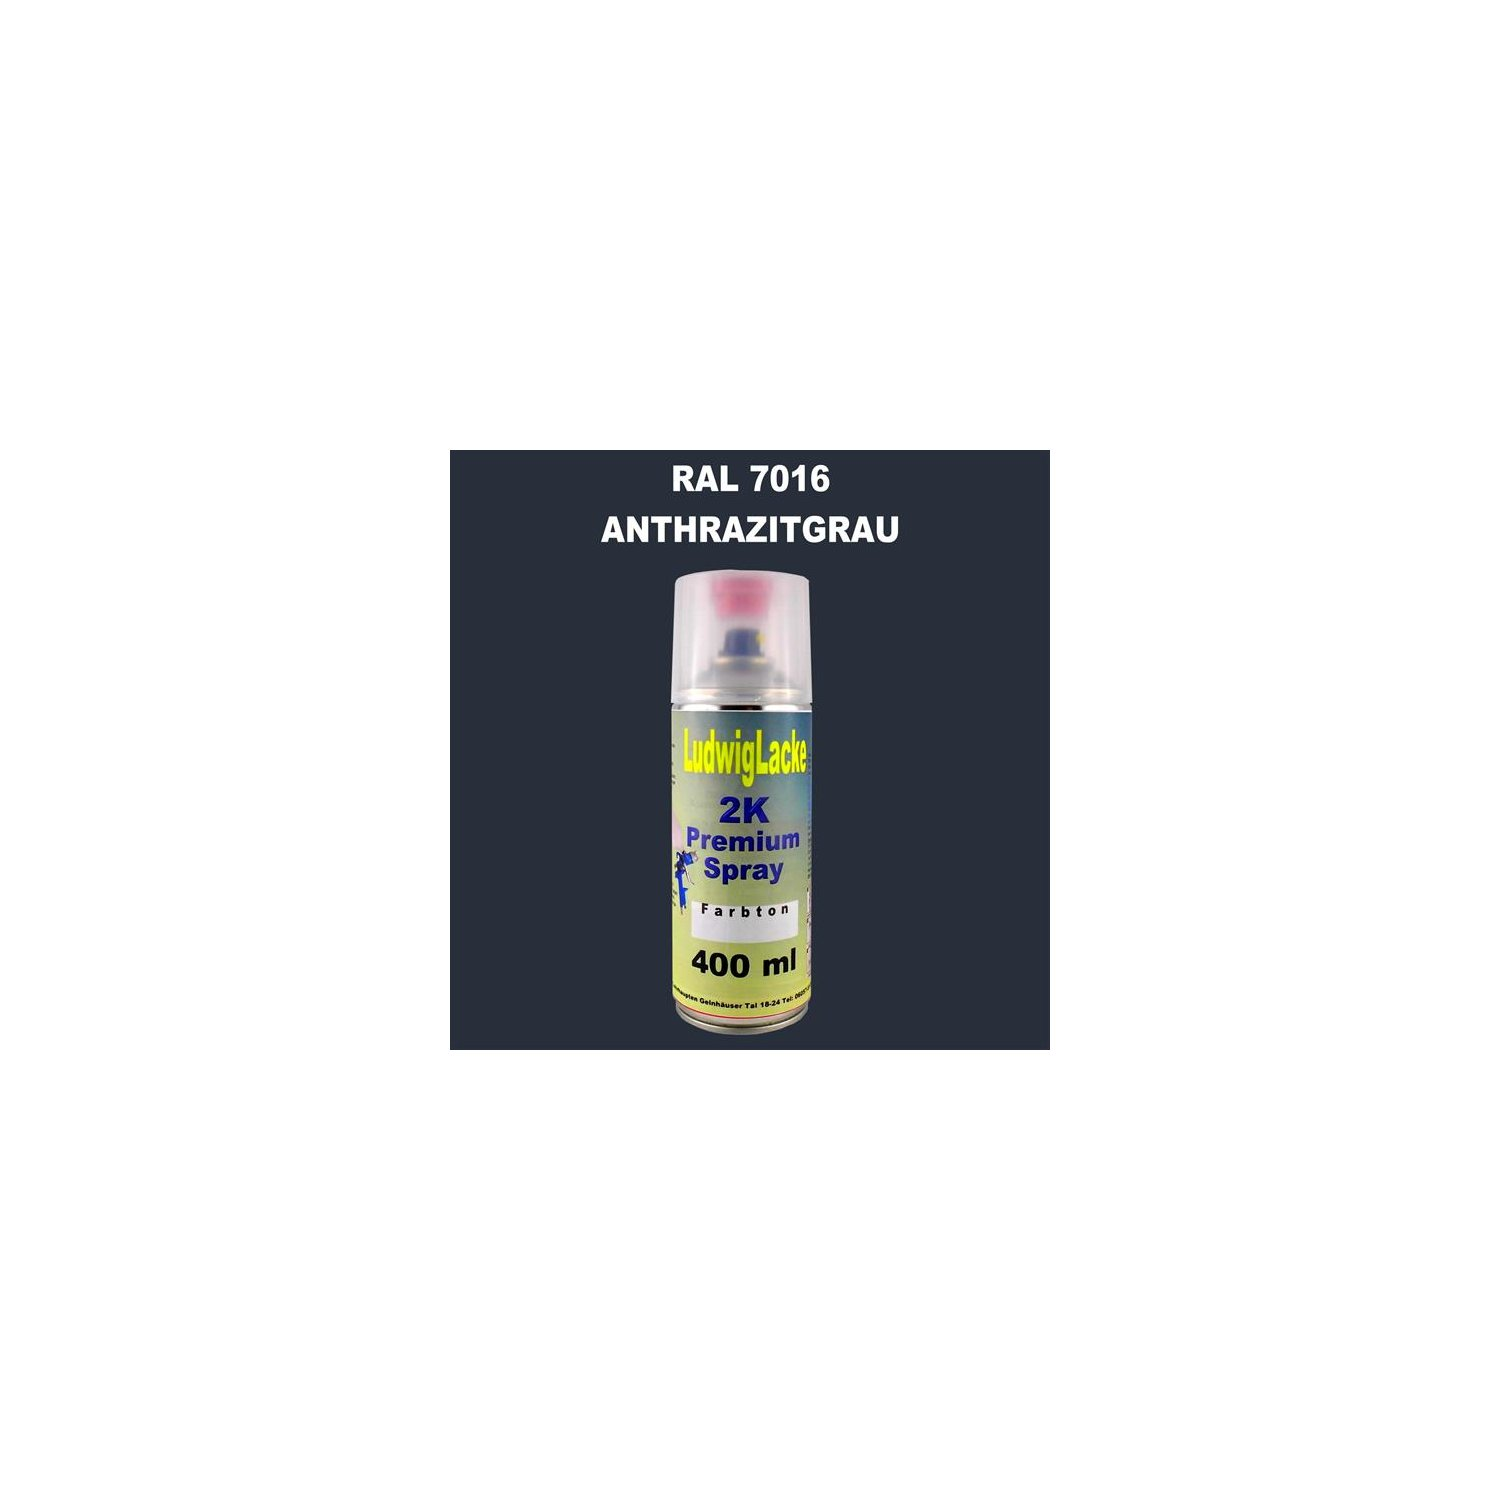 ral 7016 anthrazitgrau 2k premium spray 400ml autolackshop ludwigla 15 98. Black Bedroom Furniture Sets. Home Design Ideas